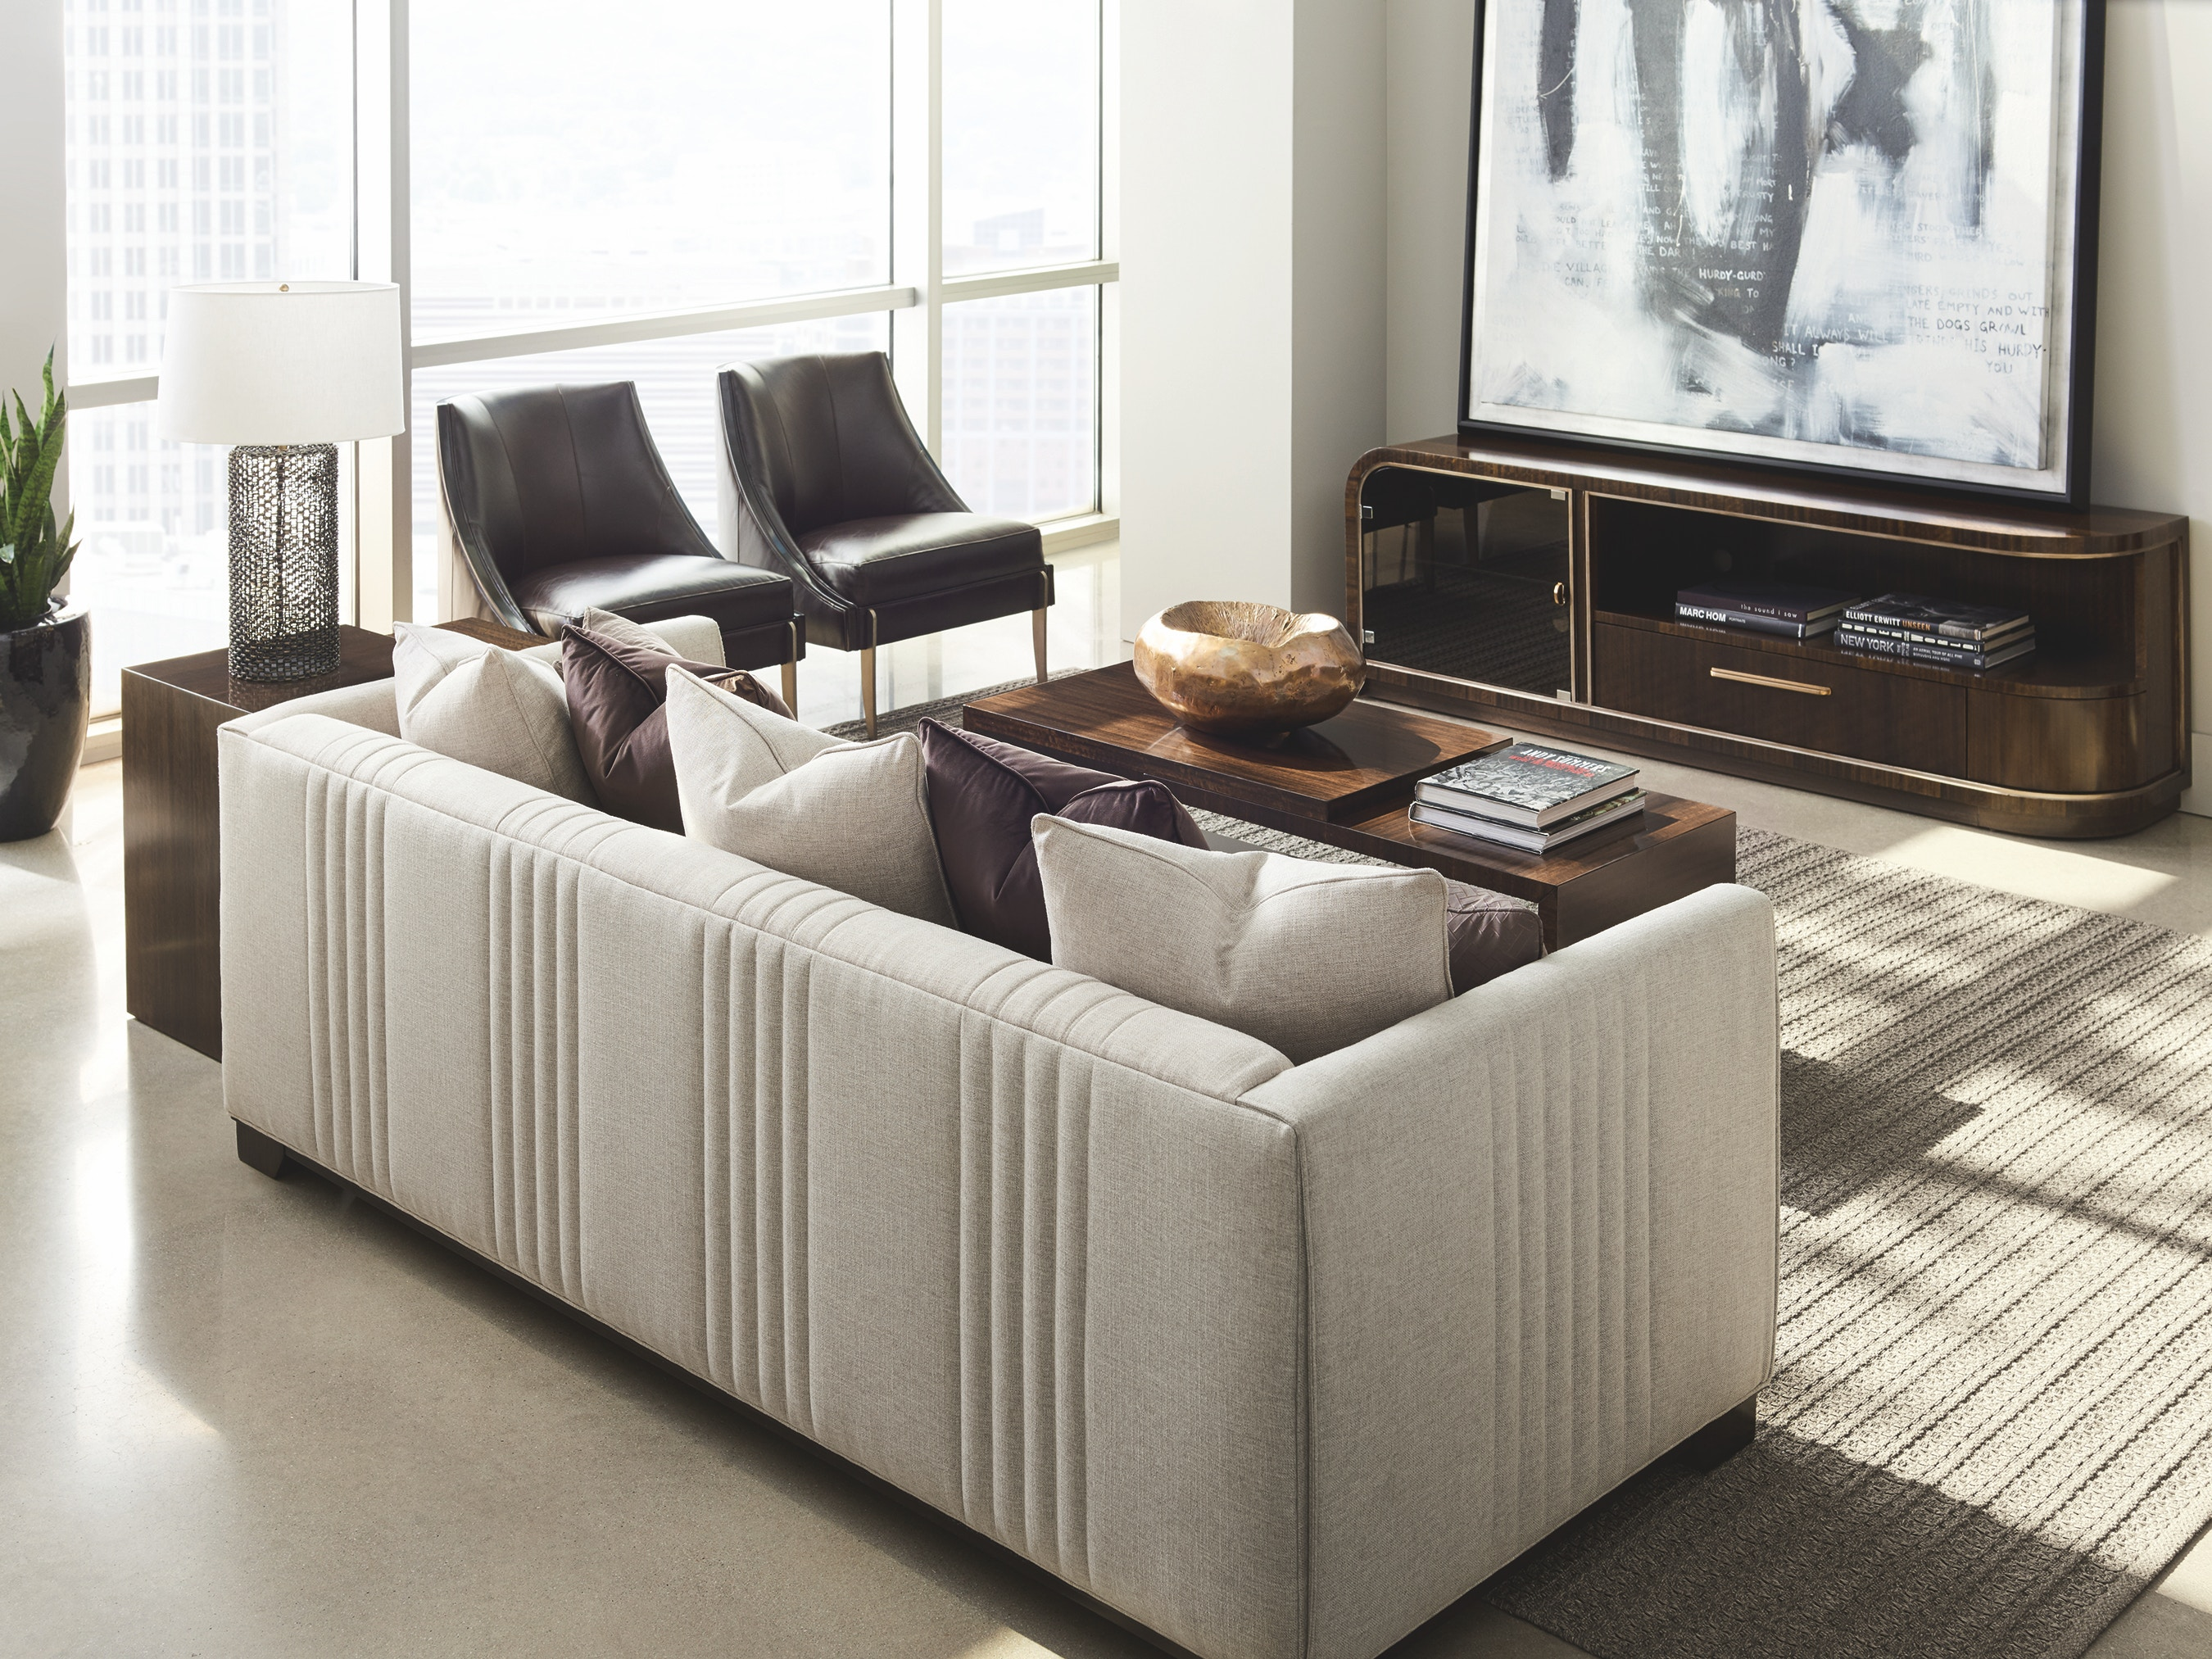 Delicieux Caracole Modern Moderne Sofa M020 417 012 A